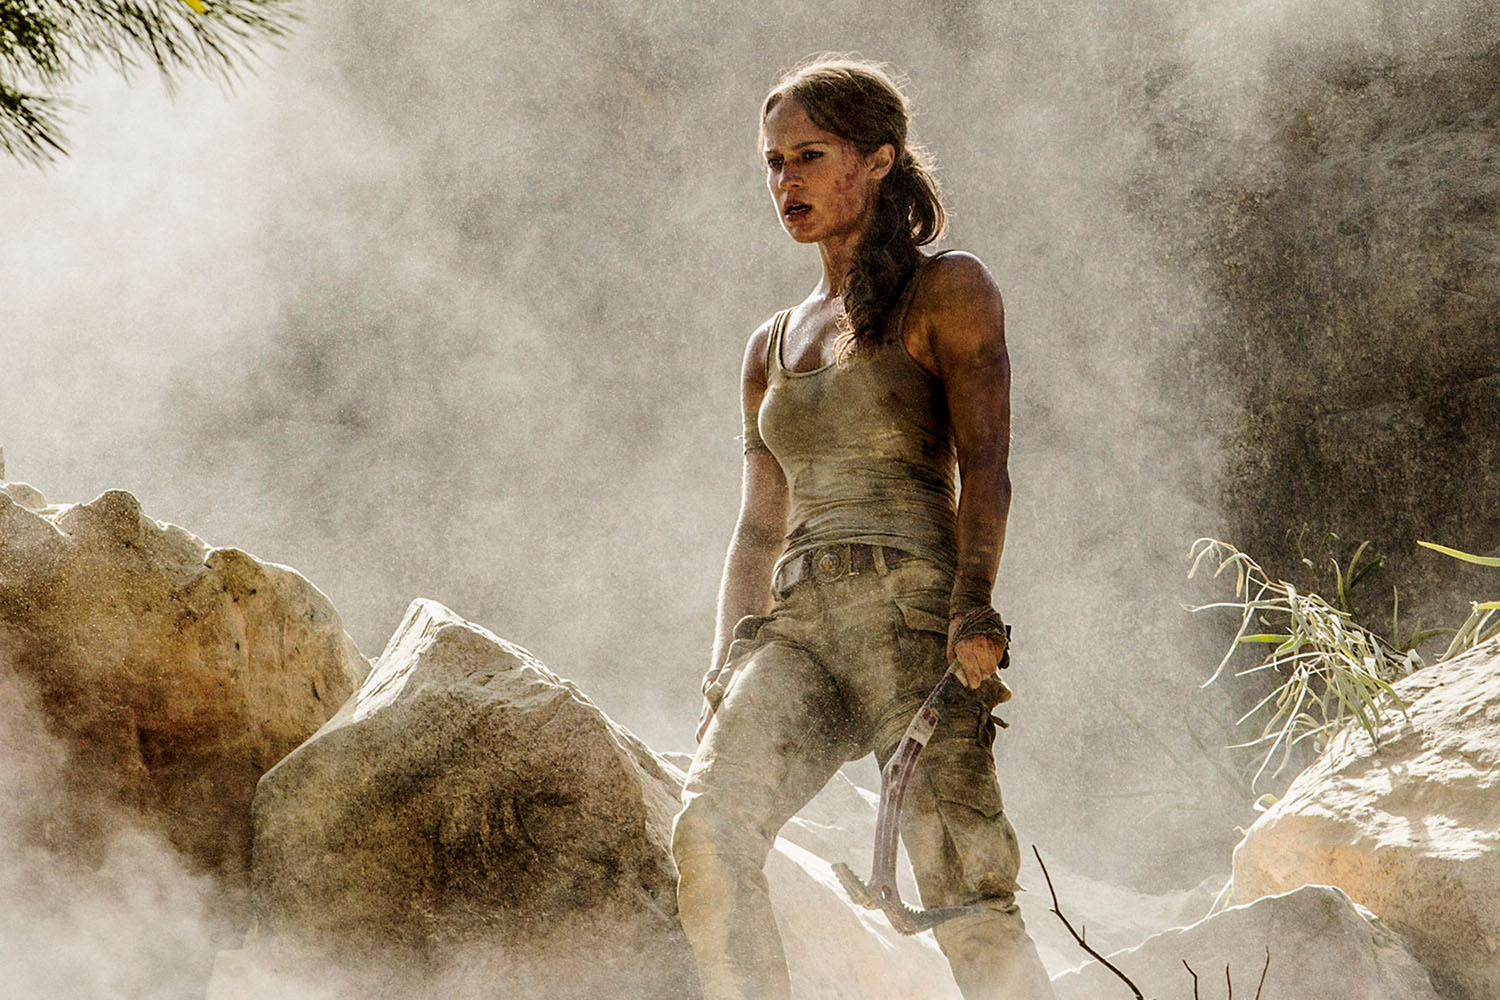 Alicia Vikander as Lara Croft in Tomb Raider 2018